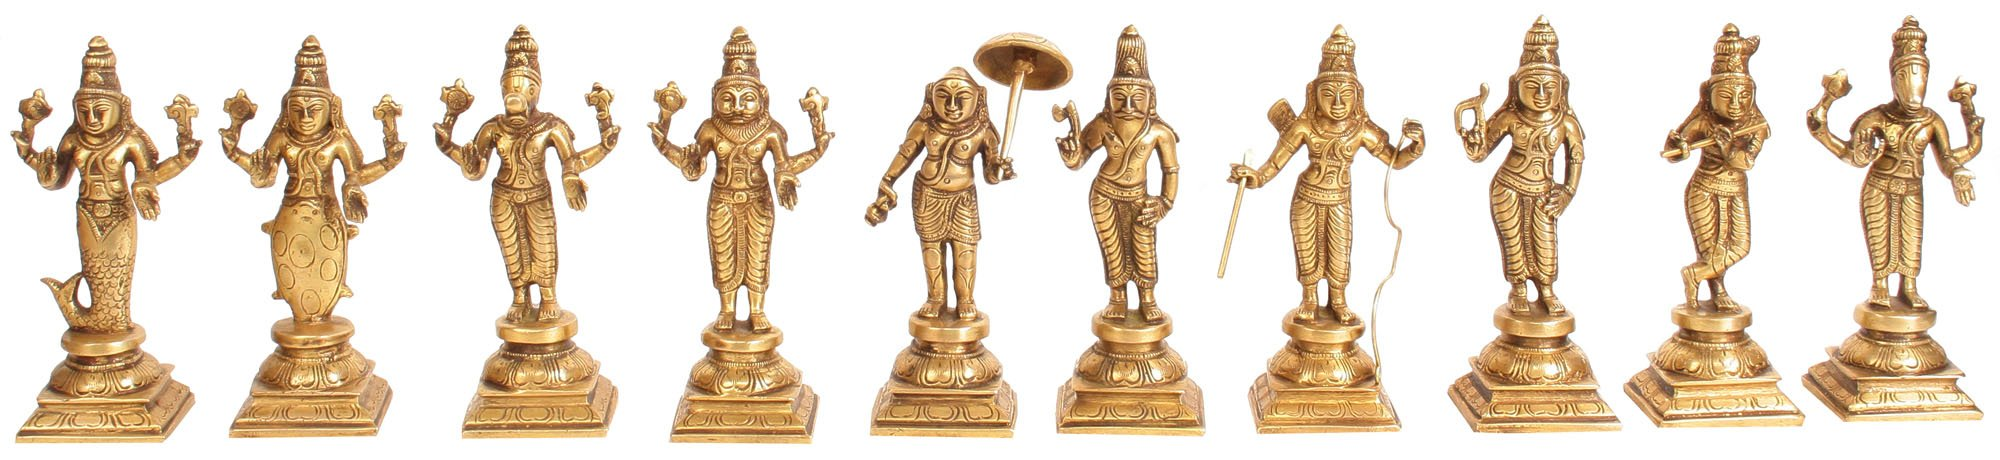 Dashavatara -Ten Incarnations of Lord Vishnu (From Left - Matshya, Kurma, Varaha, Narasimha, Vaman,